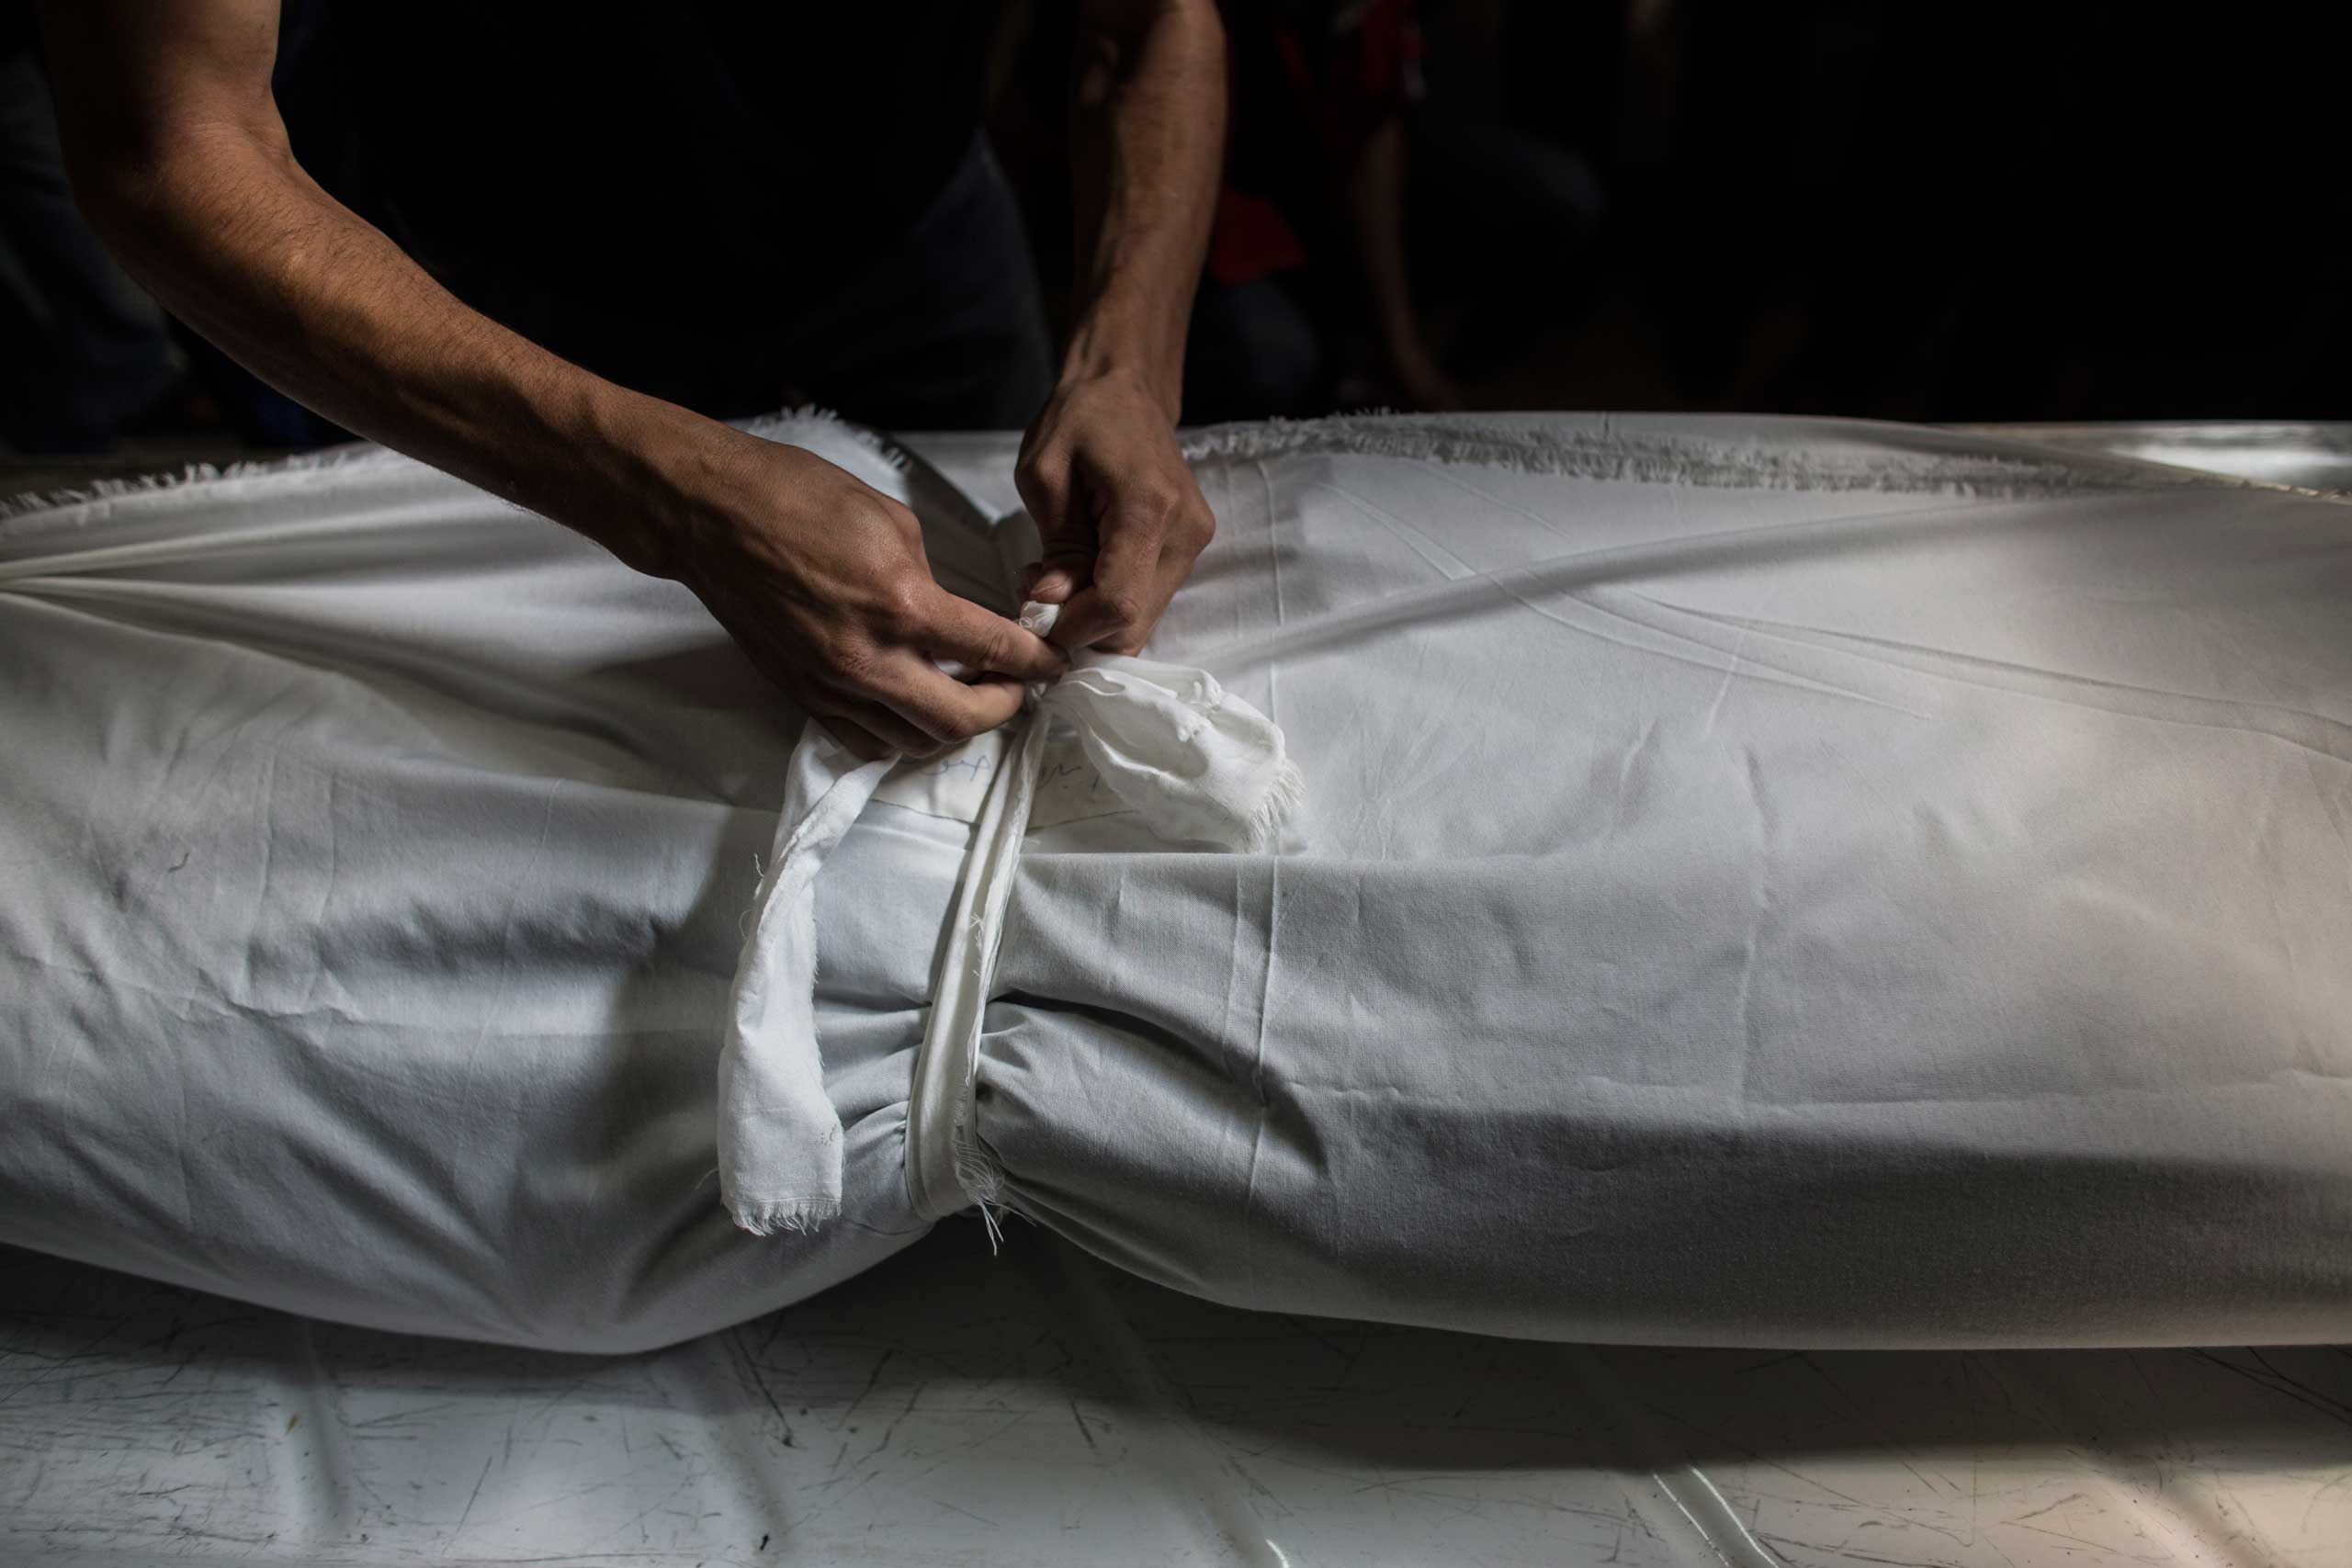 A Palestinian mortician ties a knot around a sheet covering the body of a dead Palestinian man in a morgue in Khan Younis, central Gaza City, July 18, 2014.